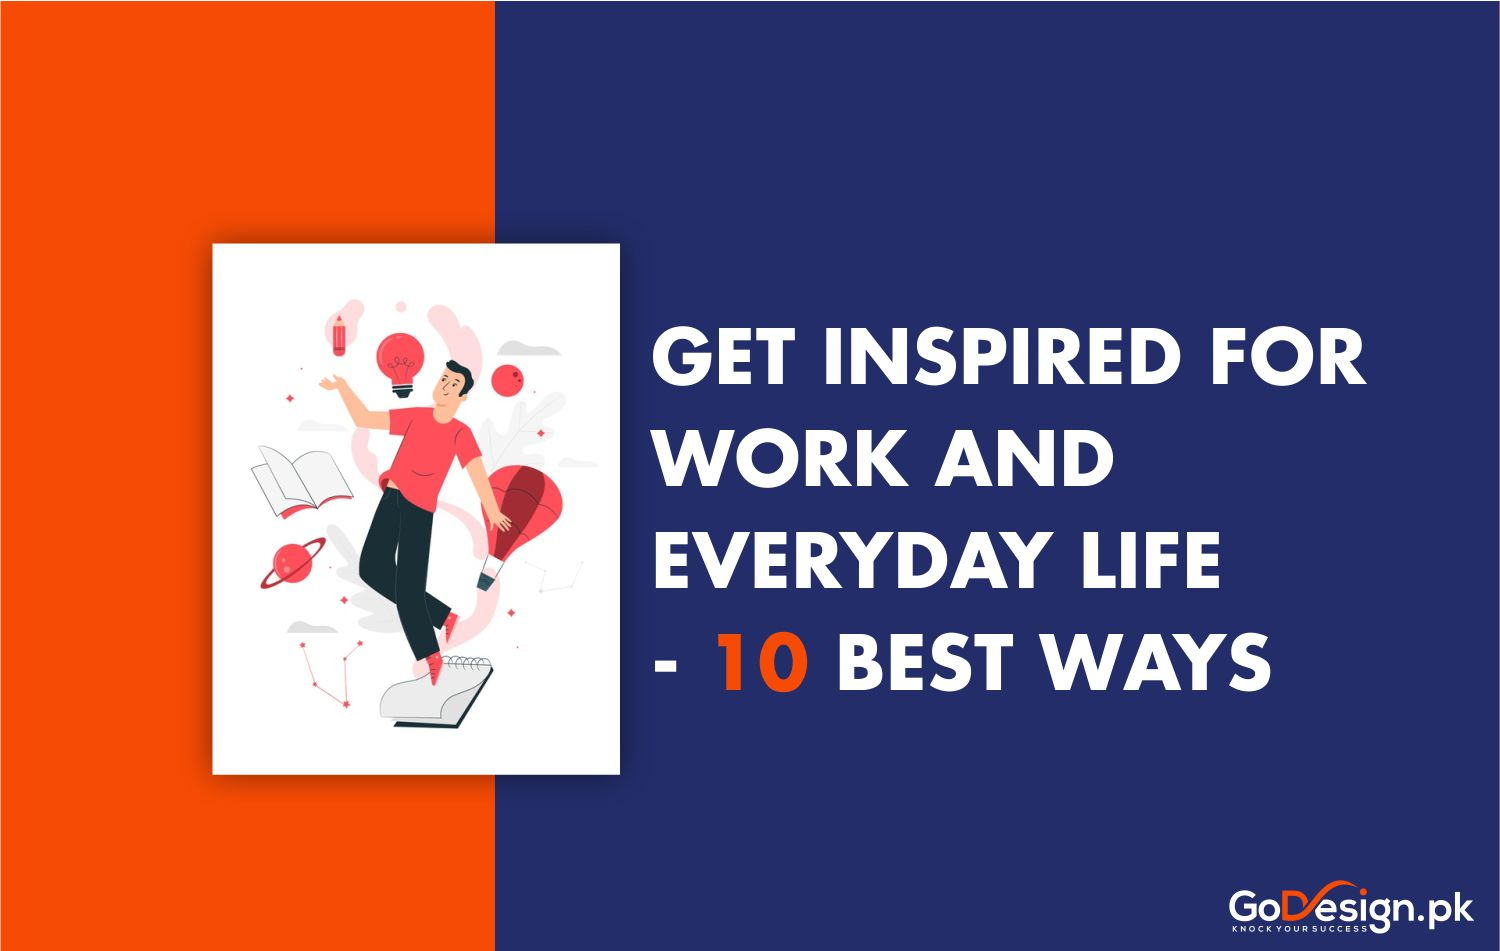 Get inspired for work and everyday life